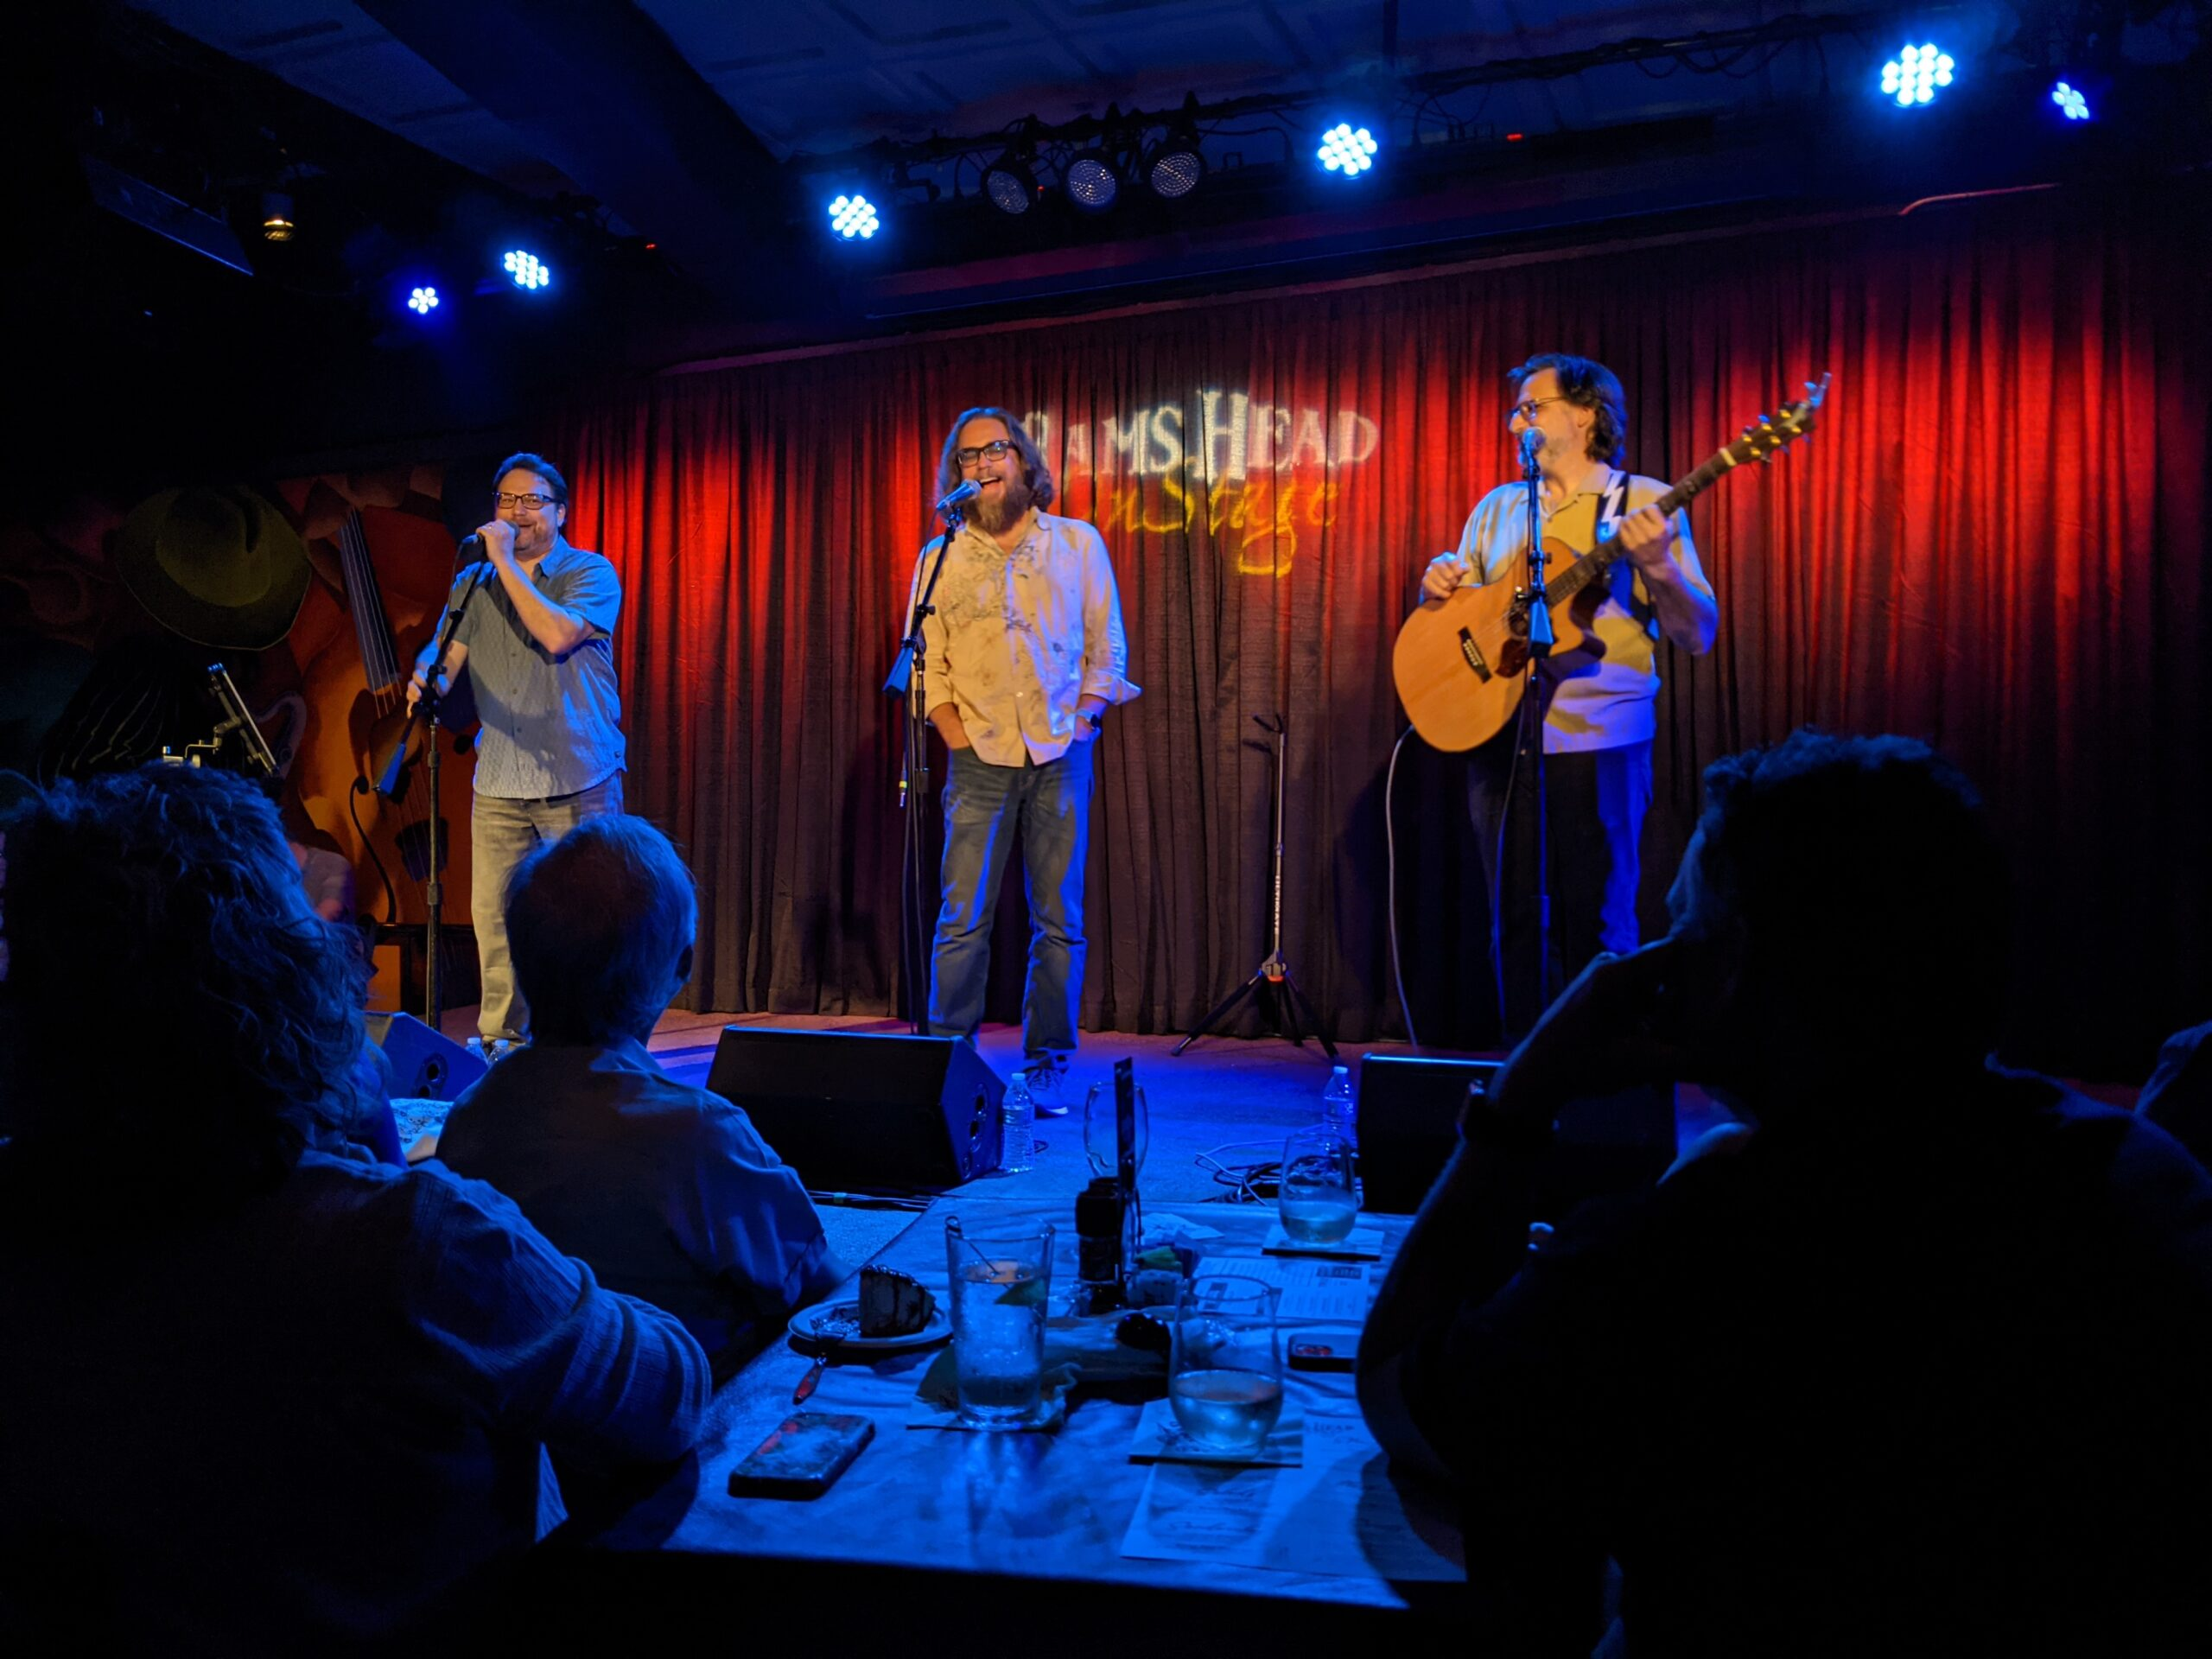 Paul and Storm and Jonathan Coulton on Stage together